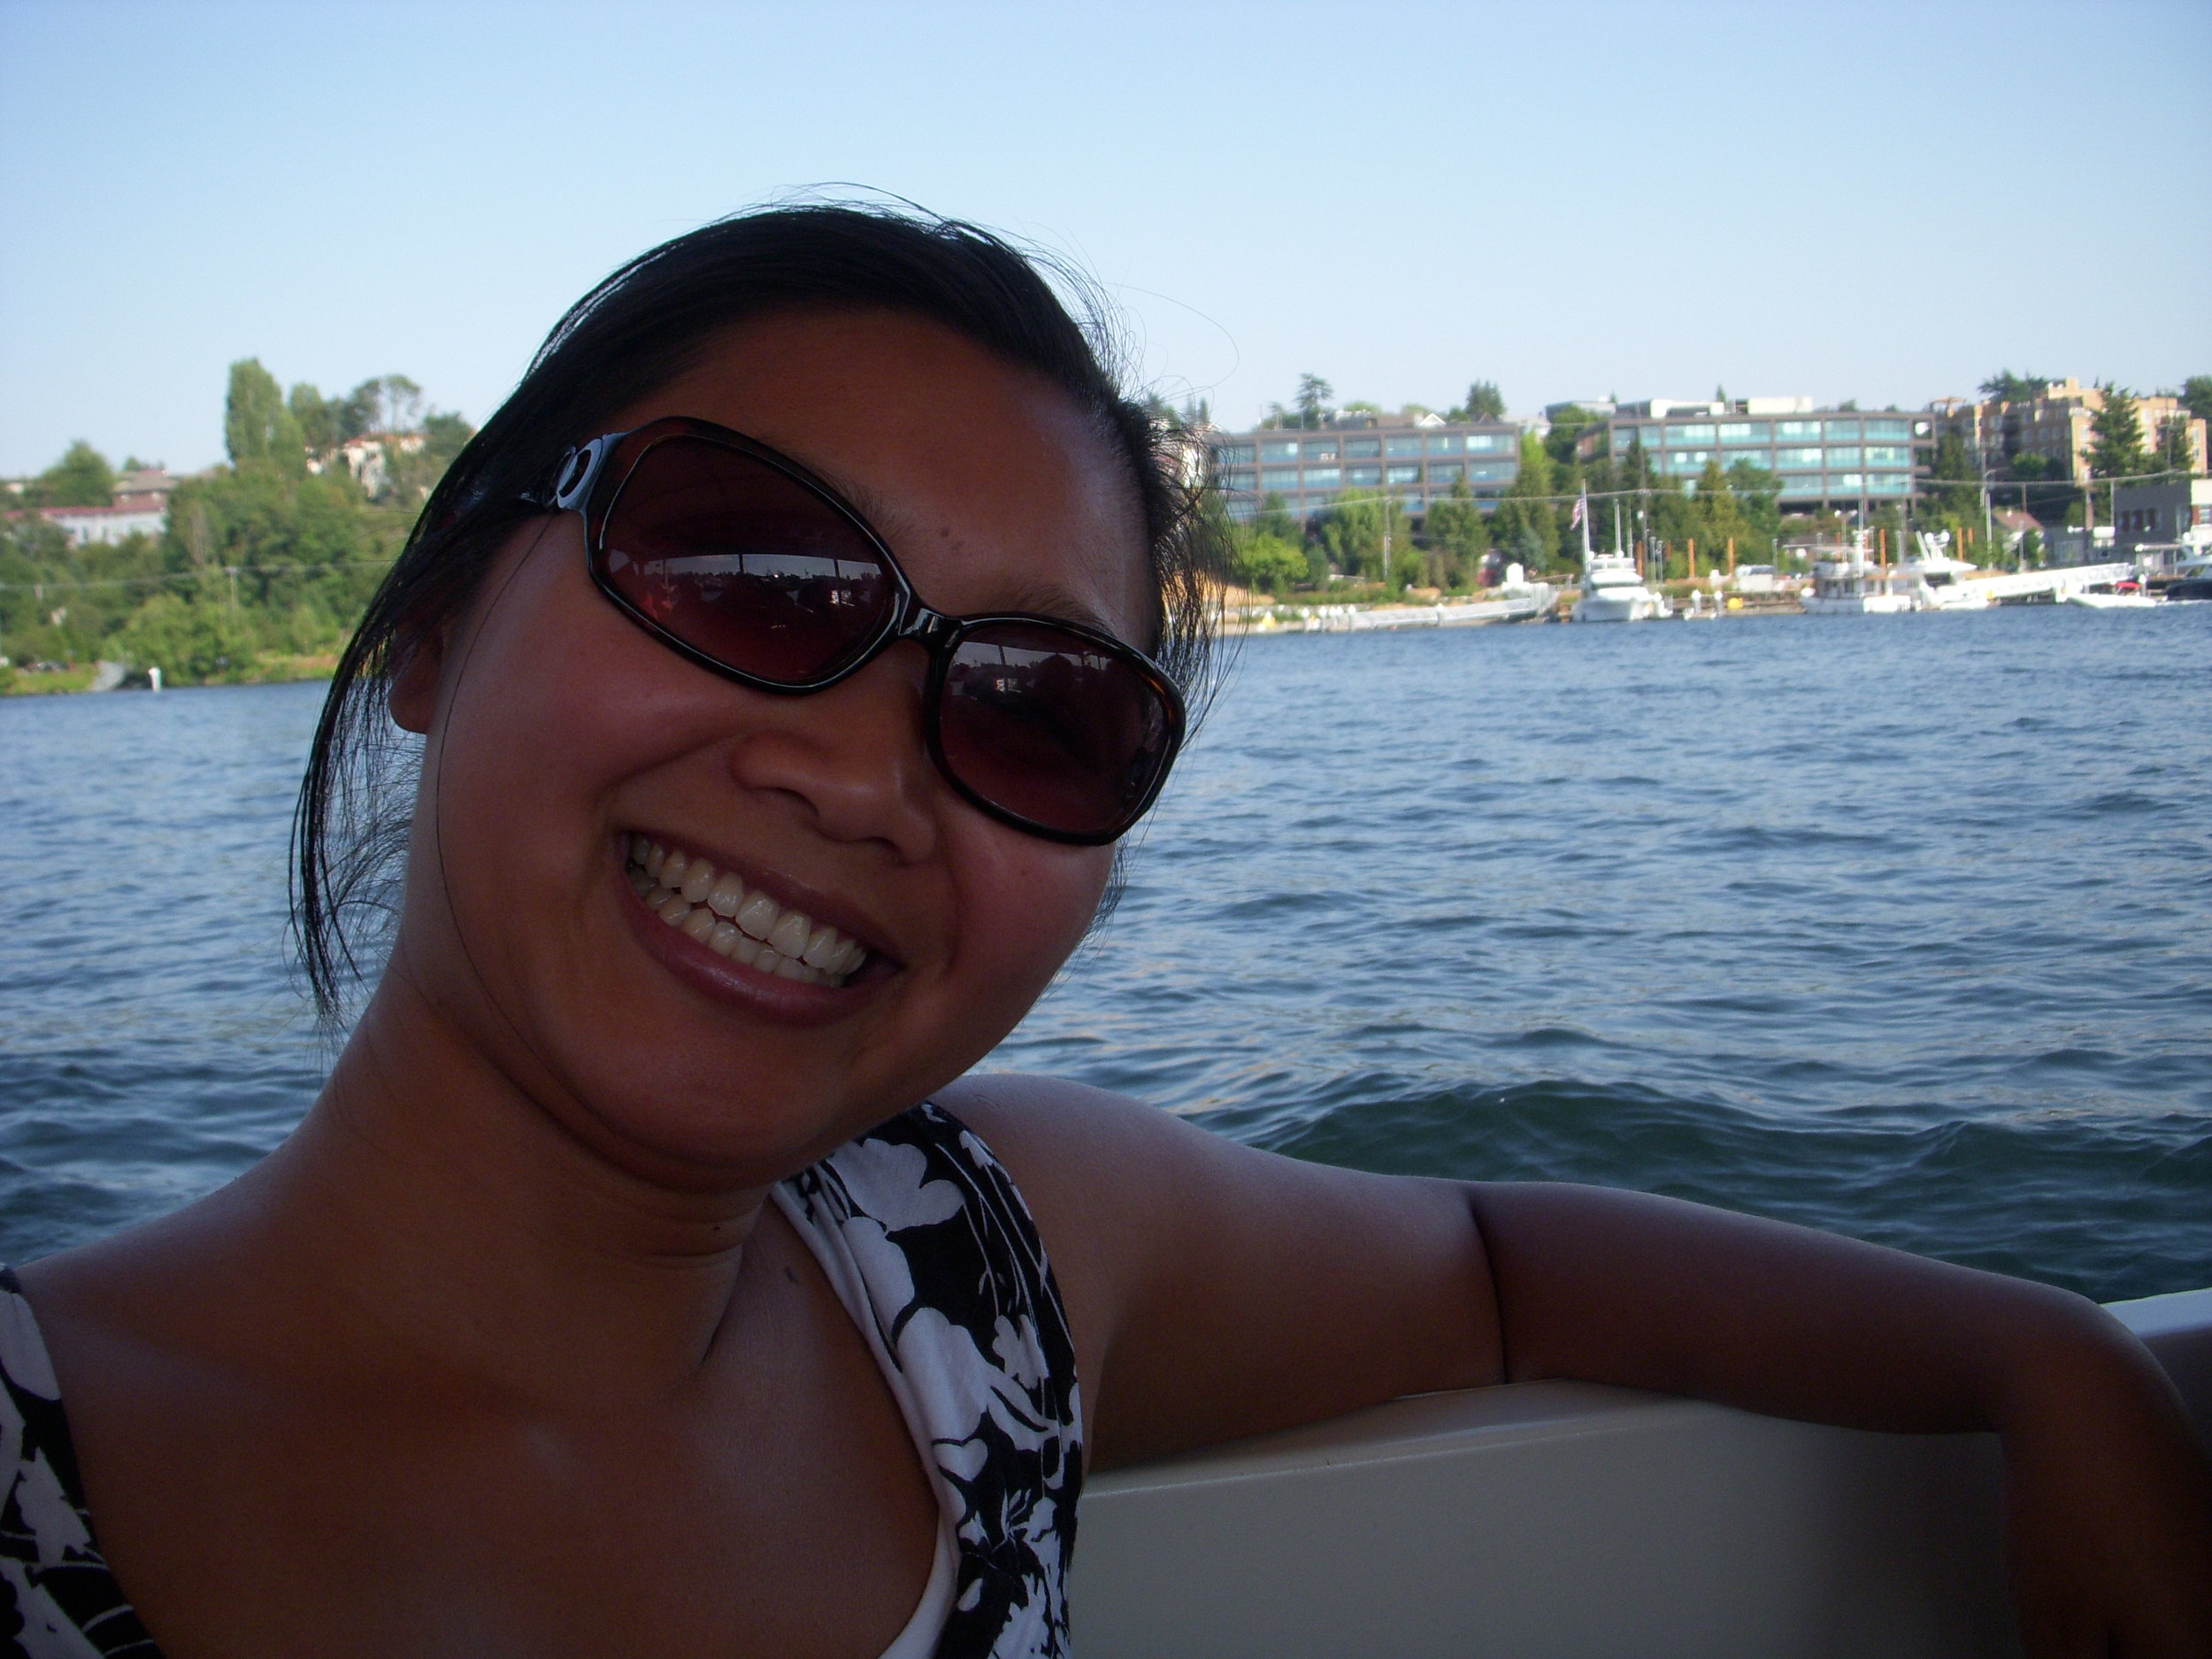 Mai on lake washington